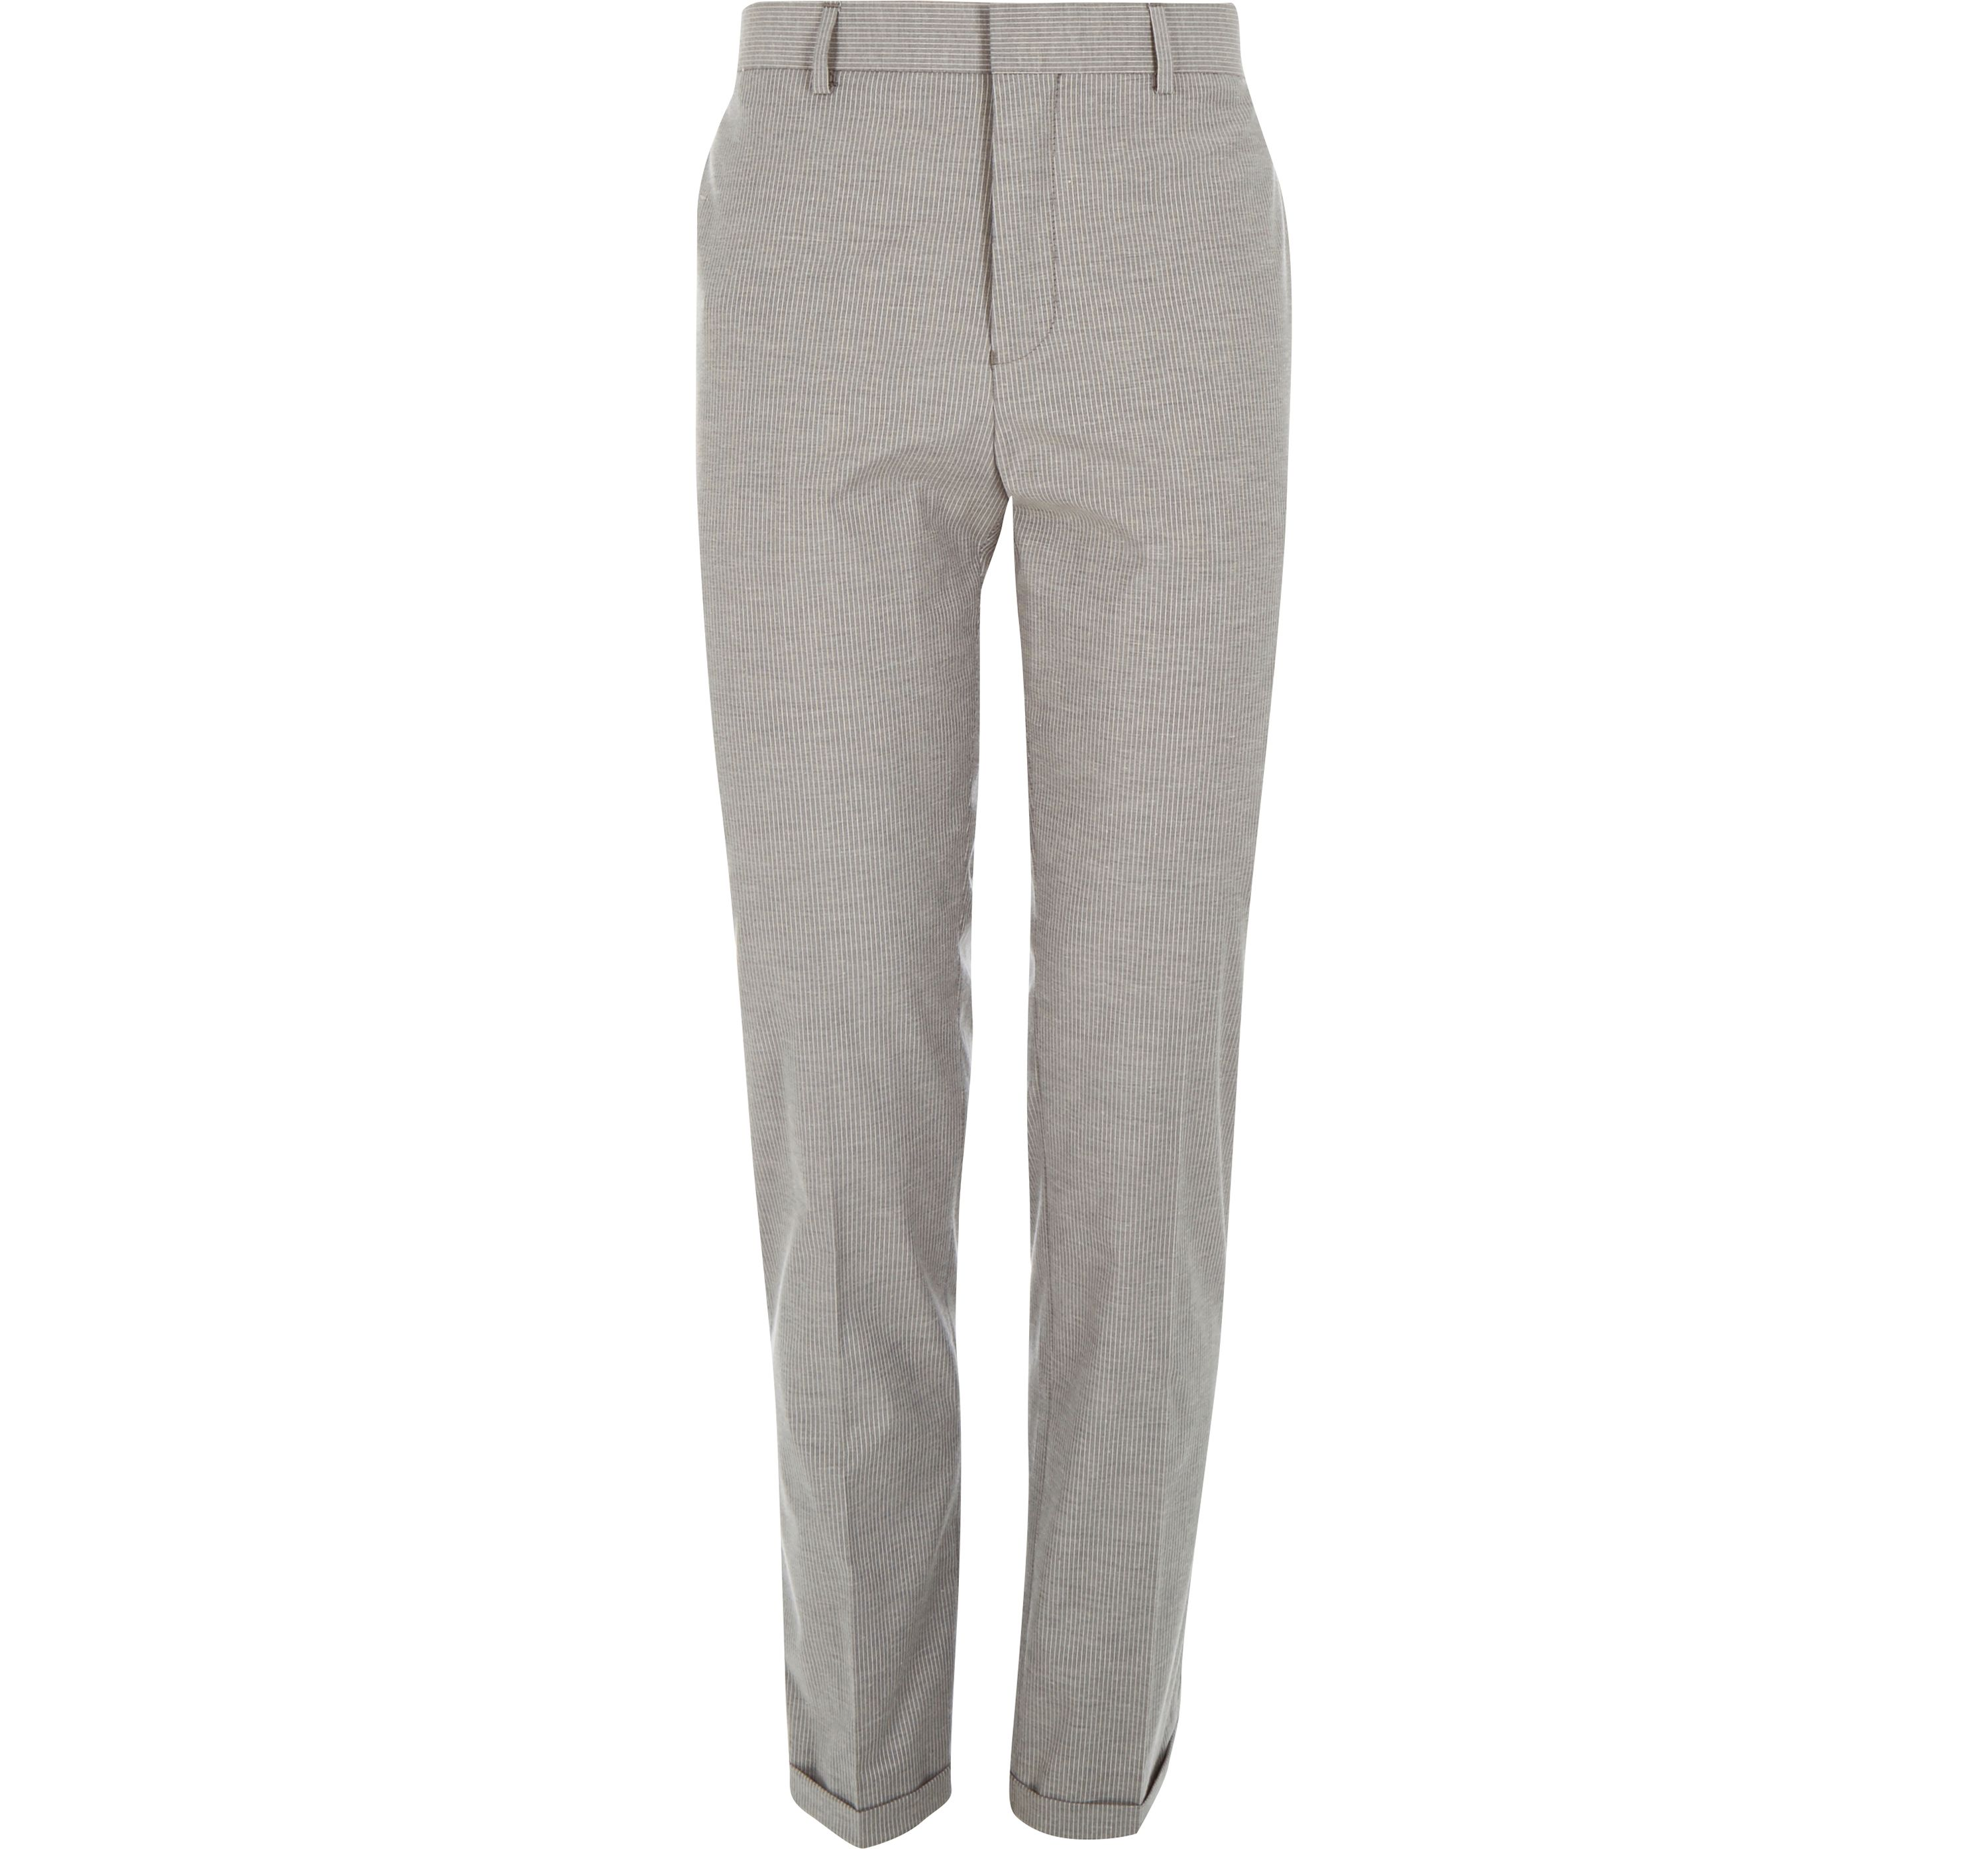 River Island Mens Grey stripe smart tailored slim trousers